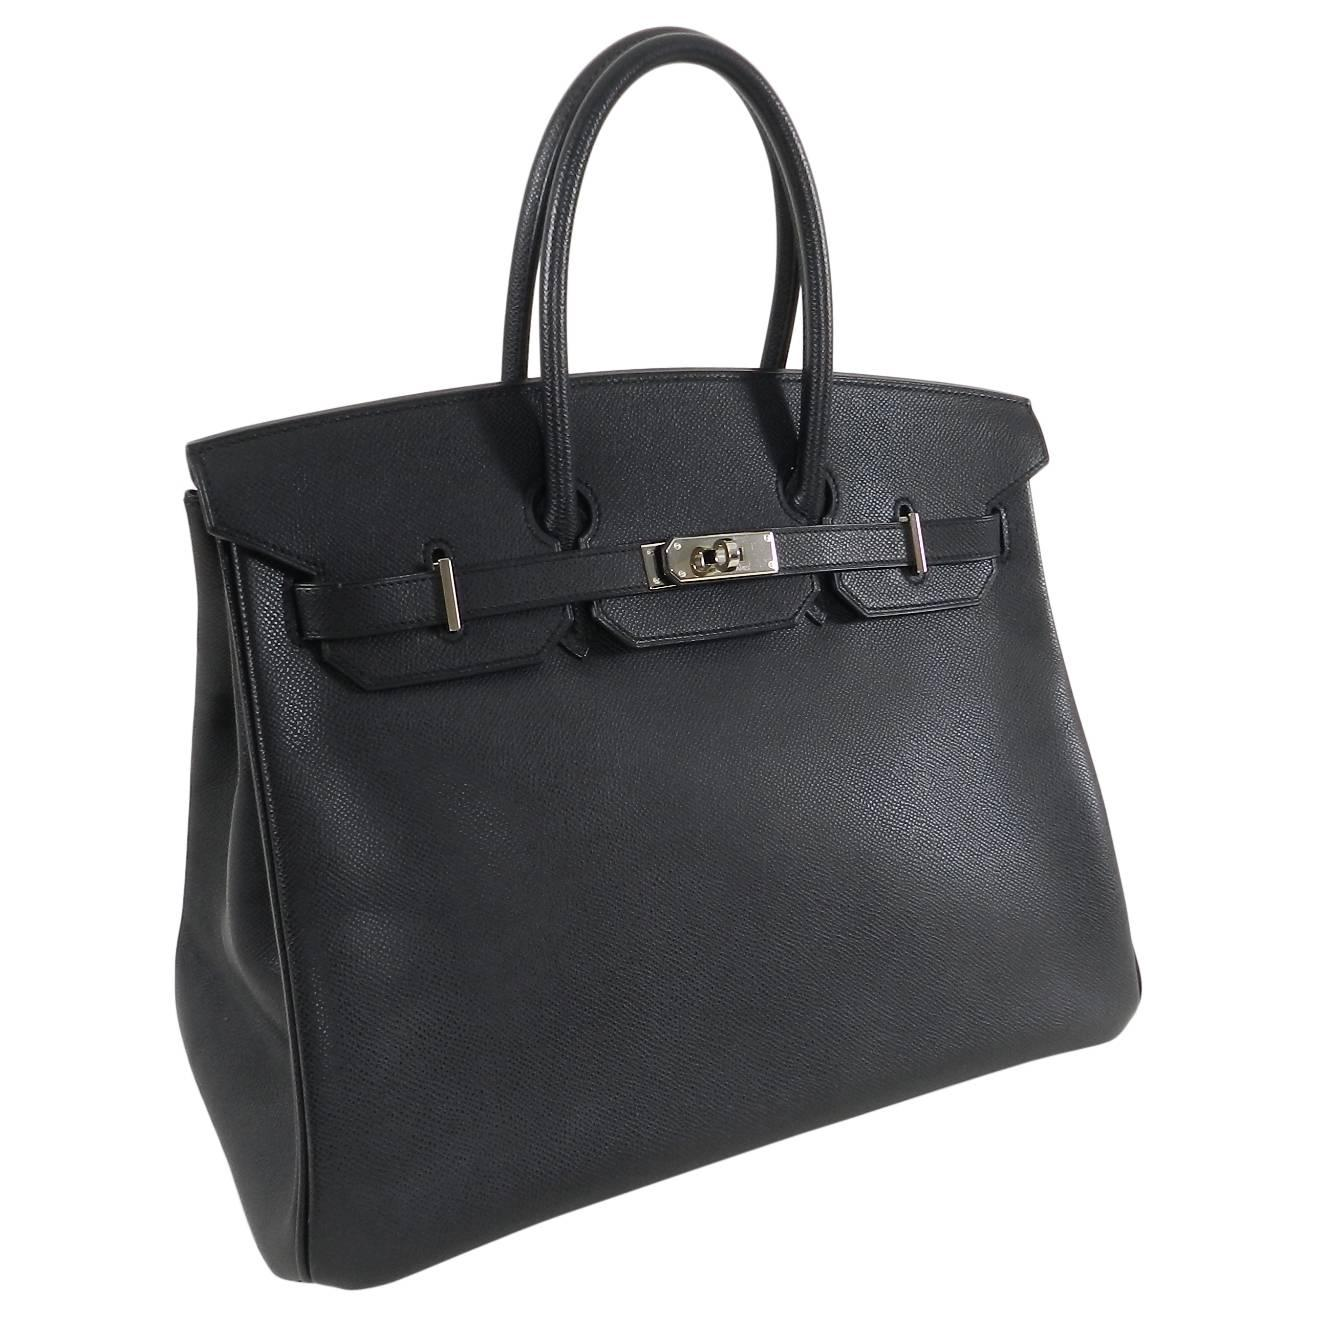 d2be66d3ae ... hot hermes birkin 35cm in black epsom leather and silvertone palladium  hardware. lined with chevre